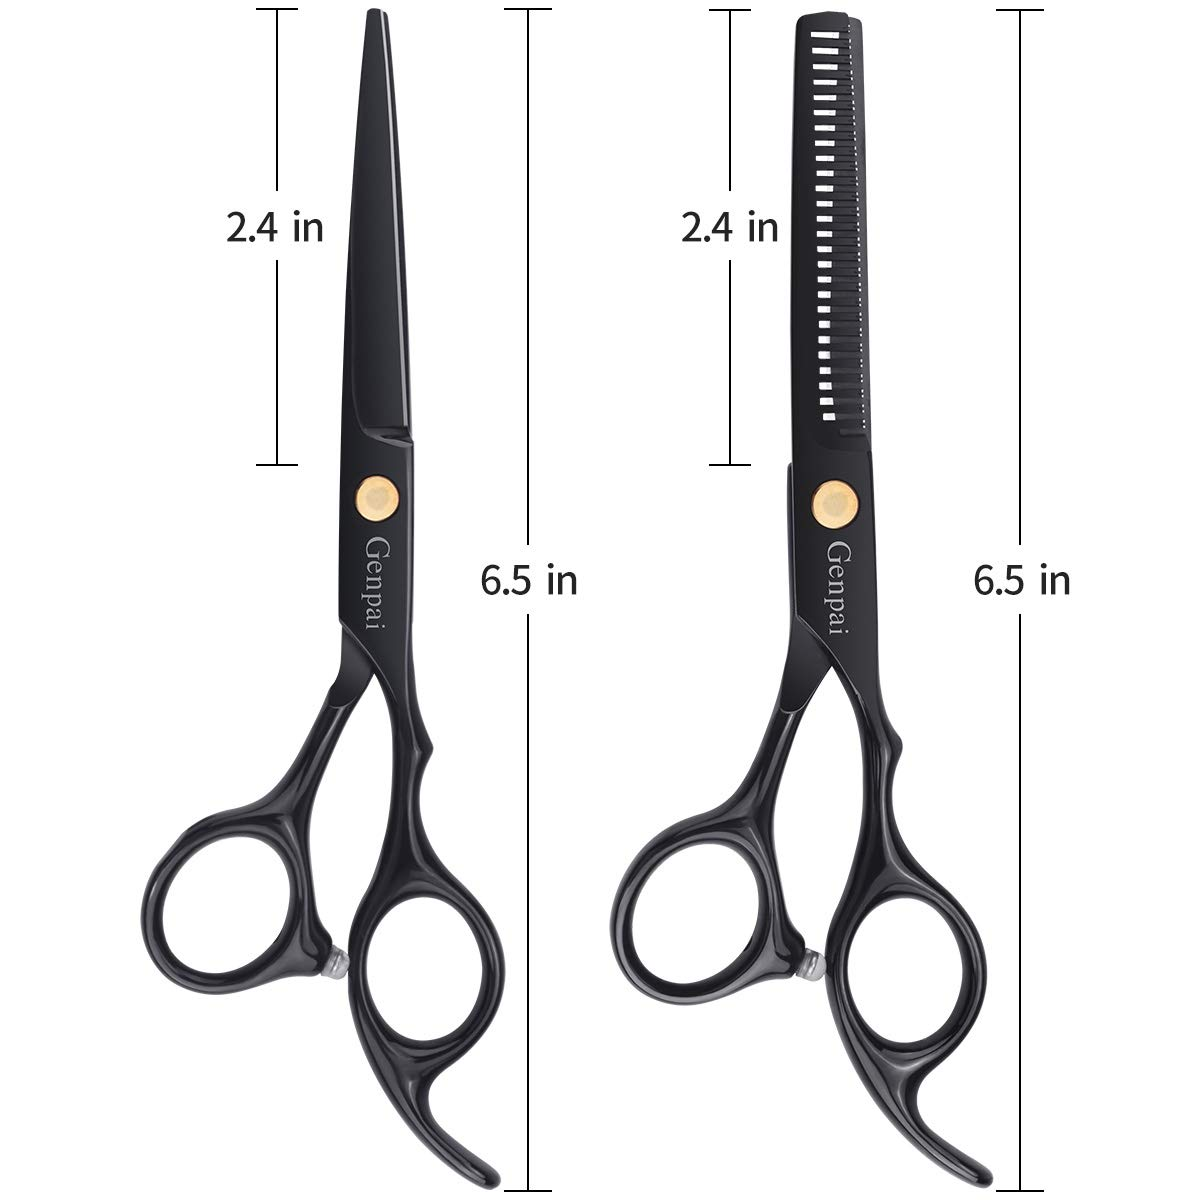 Genpai Hair Cutting Scissors Set, Professional Barber Hair Salon Household Children\'s Stainless Steel Shear Bangs Artifact Thinning Hairdressing Shear with Black Leather Case(Black)